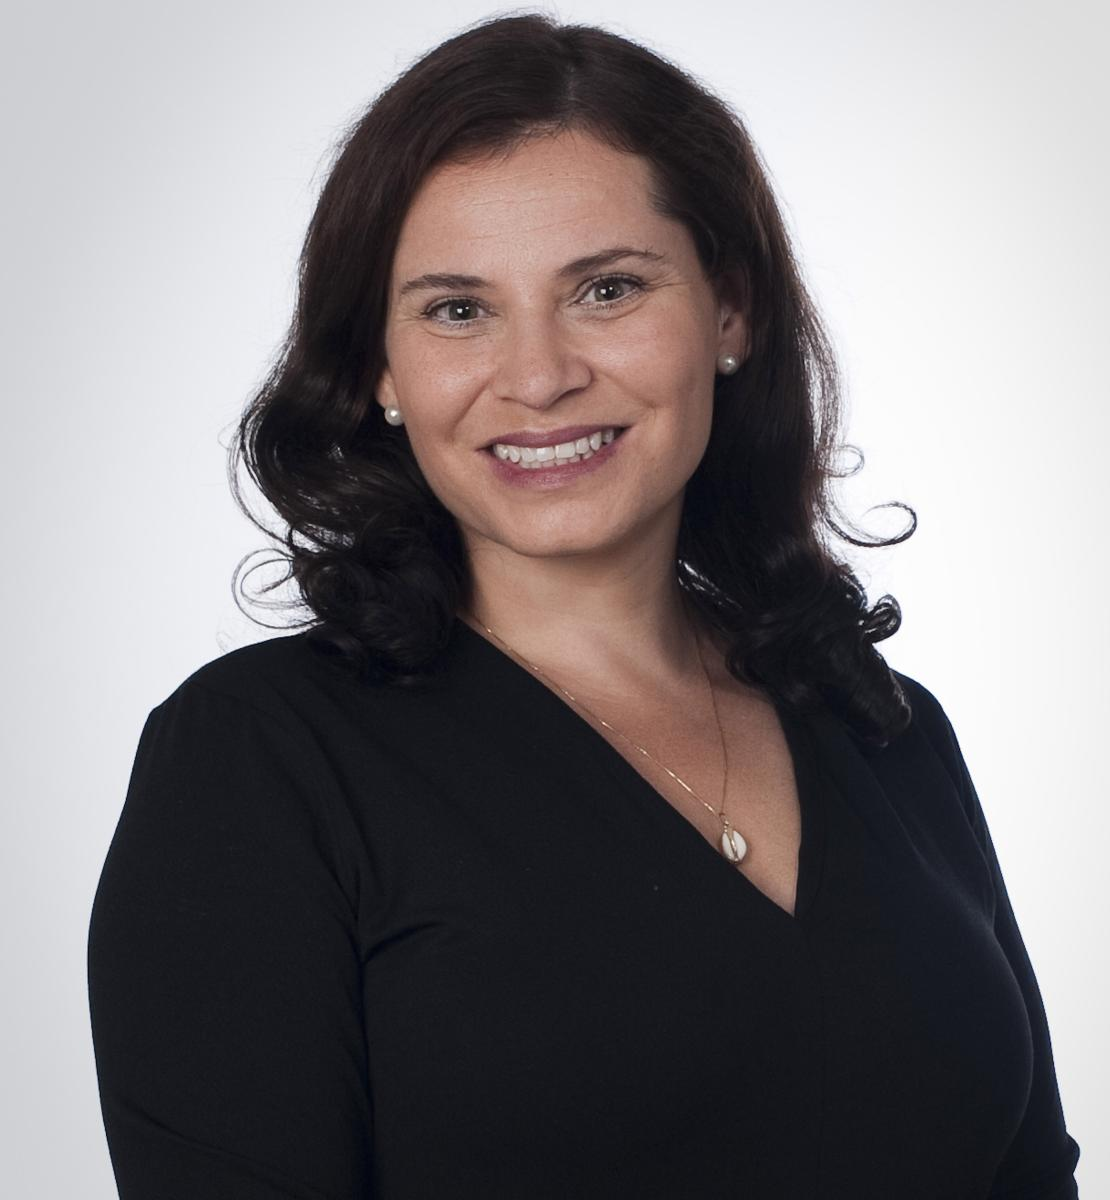 Official photo of the new appointed Resident Coordinator for Ecuador, Lena Savelli.